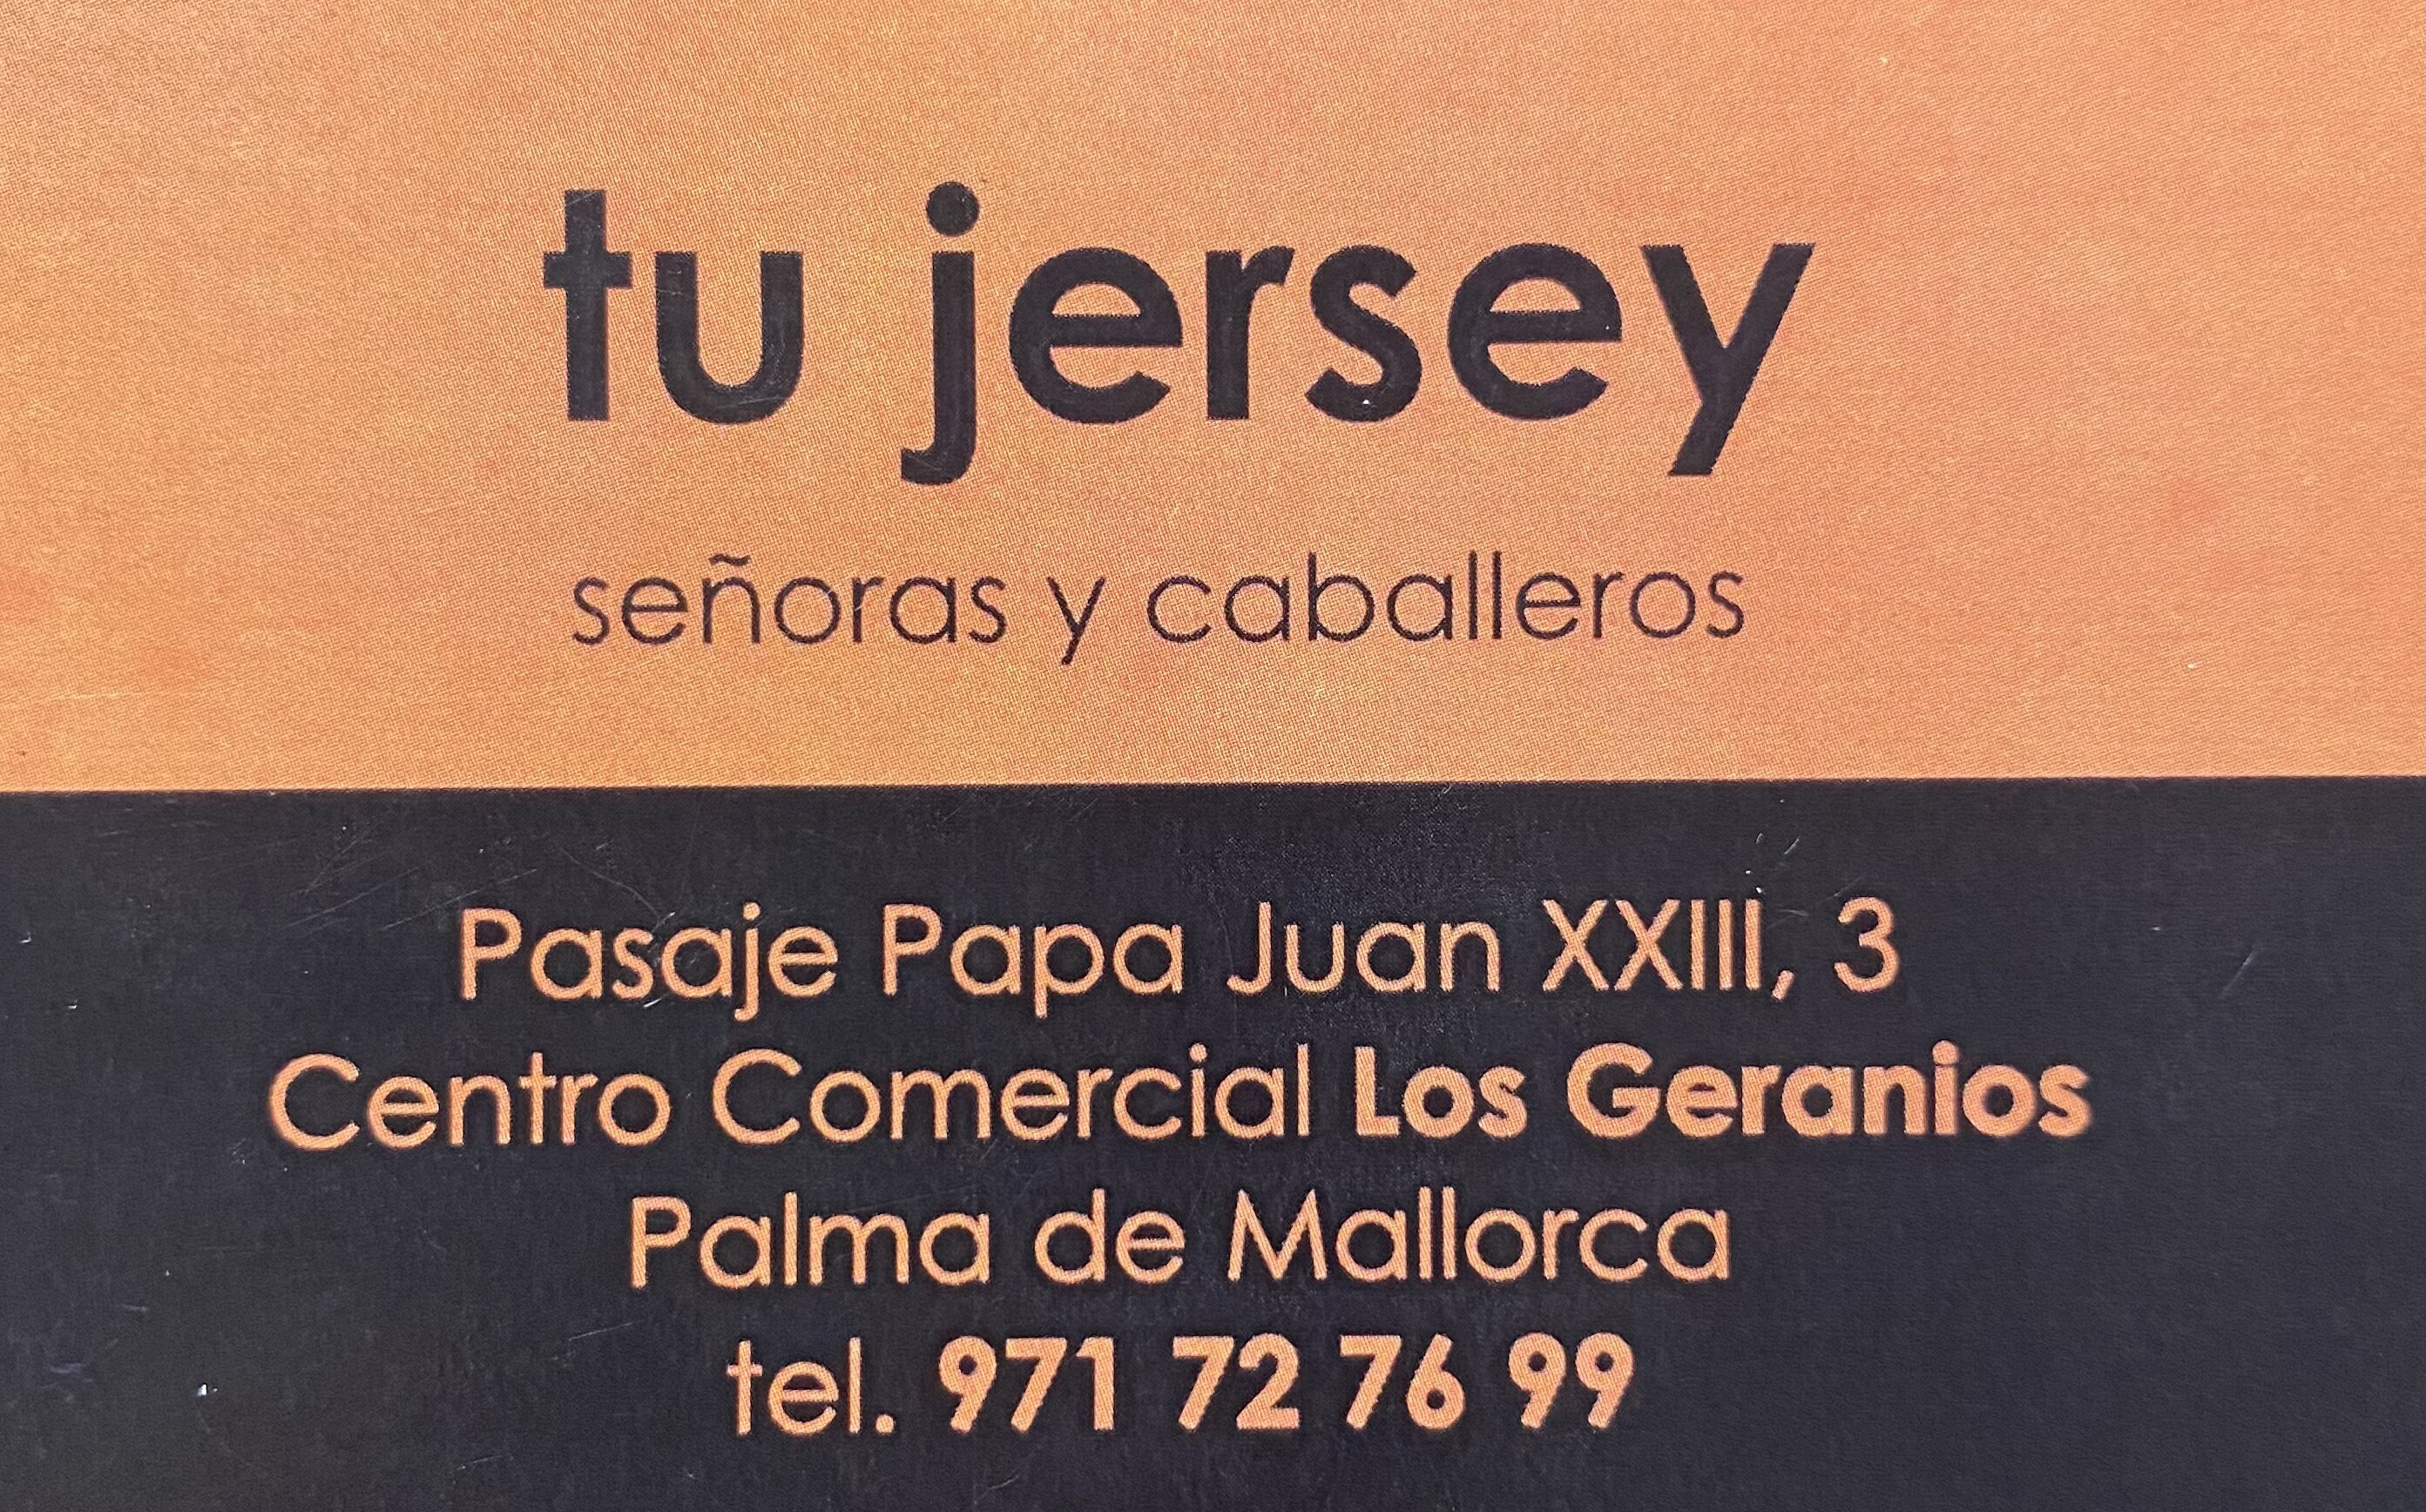 tujersey